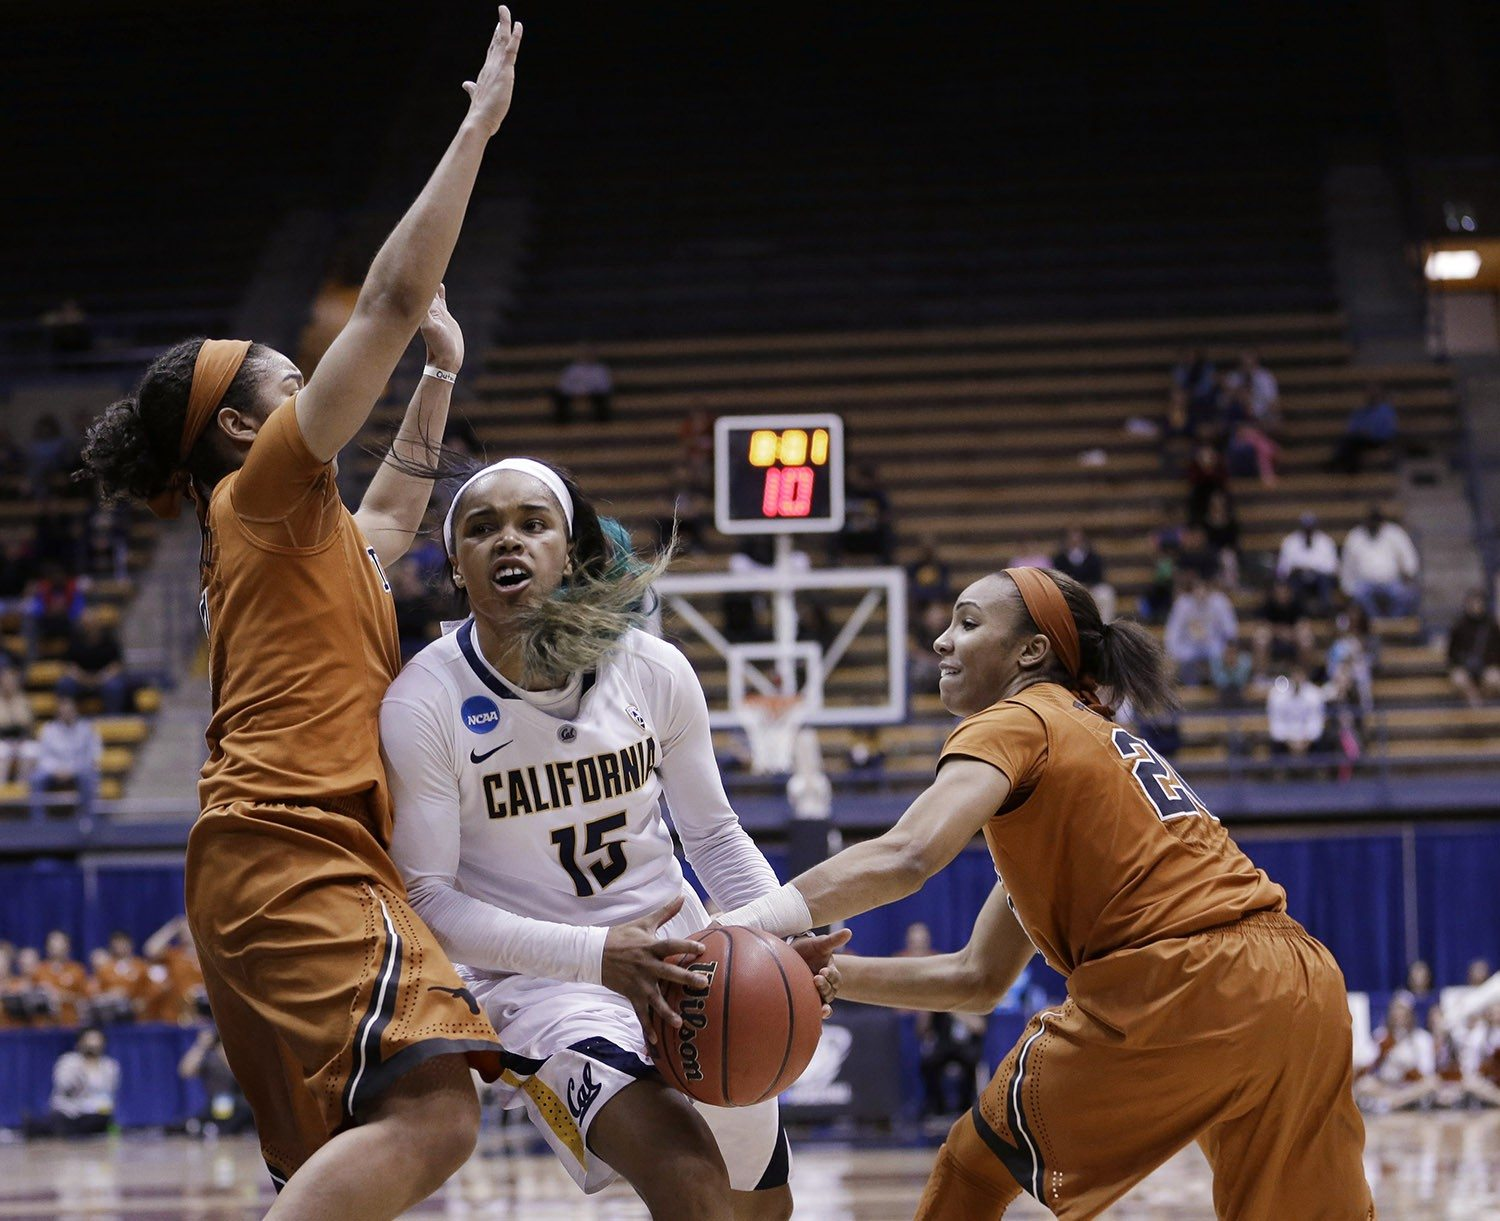 Marcio Jose Sanchez/APCalifornia guard Brittany Boyd (15) tries to get a shot off between Texas guards Celina Rodrigo